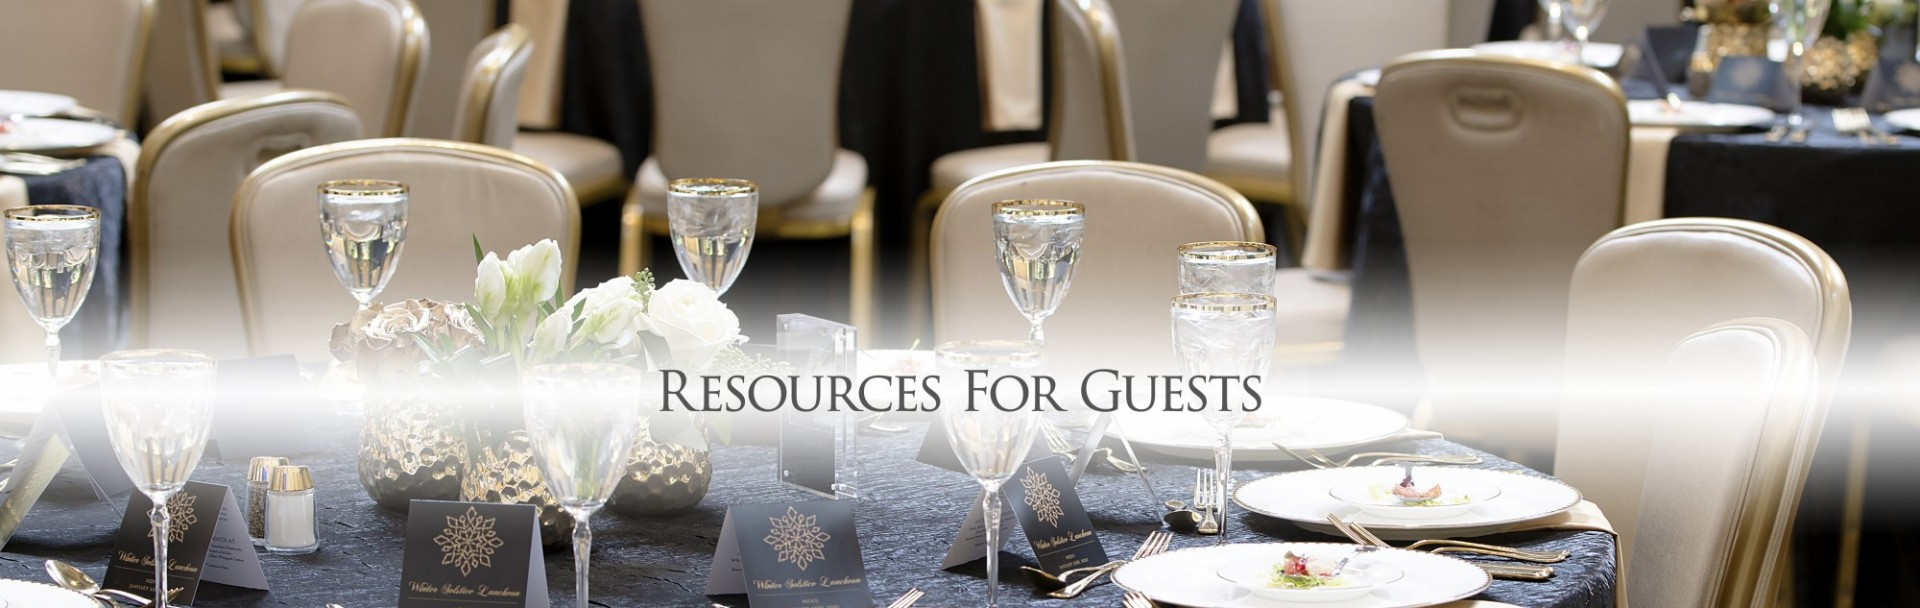 Resoures for Guests